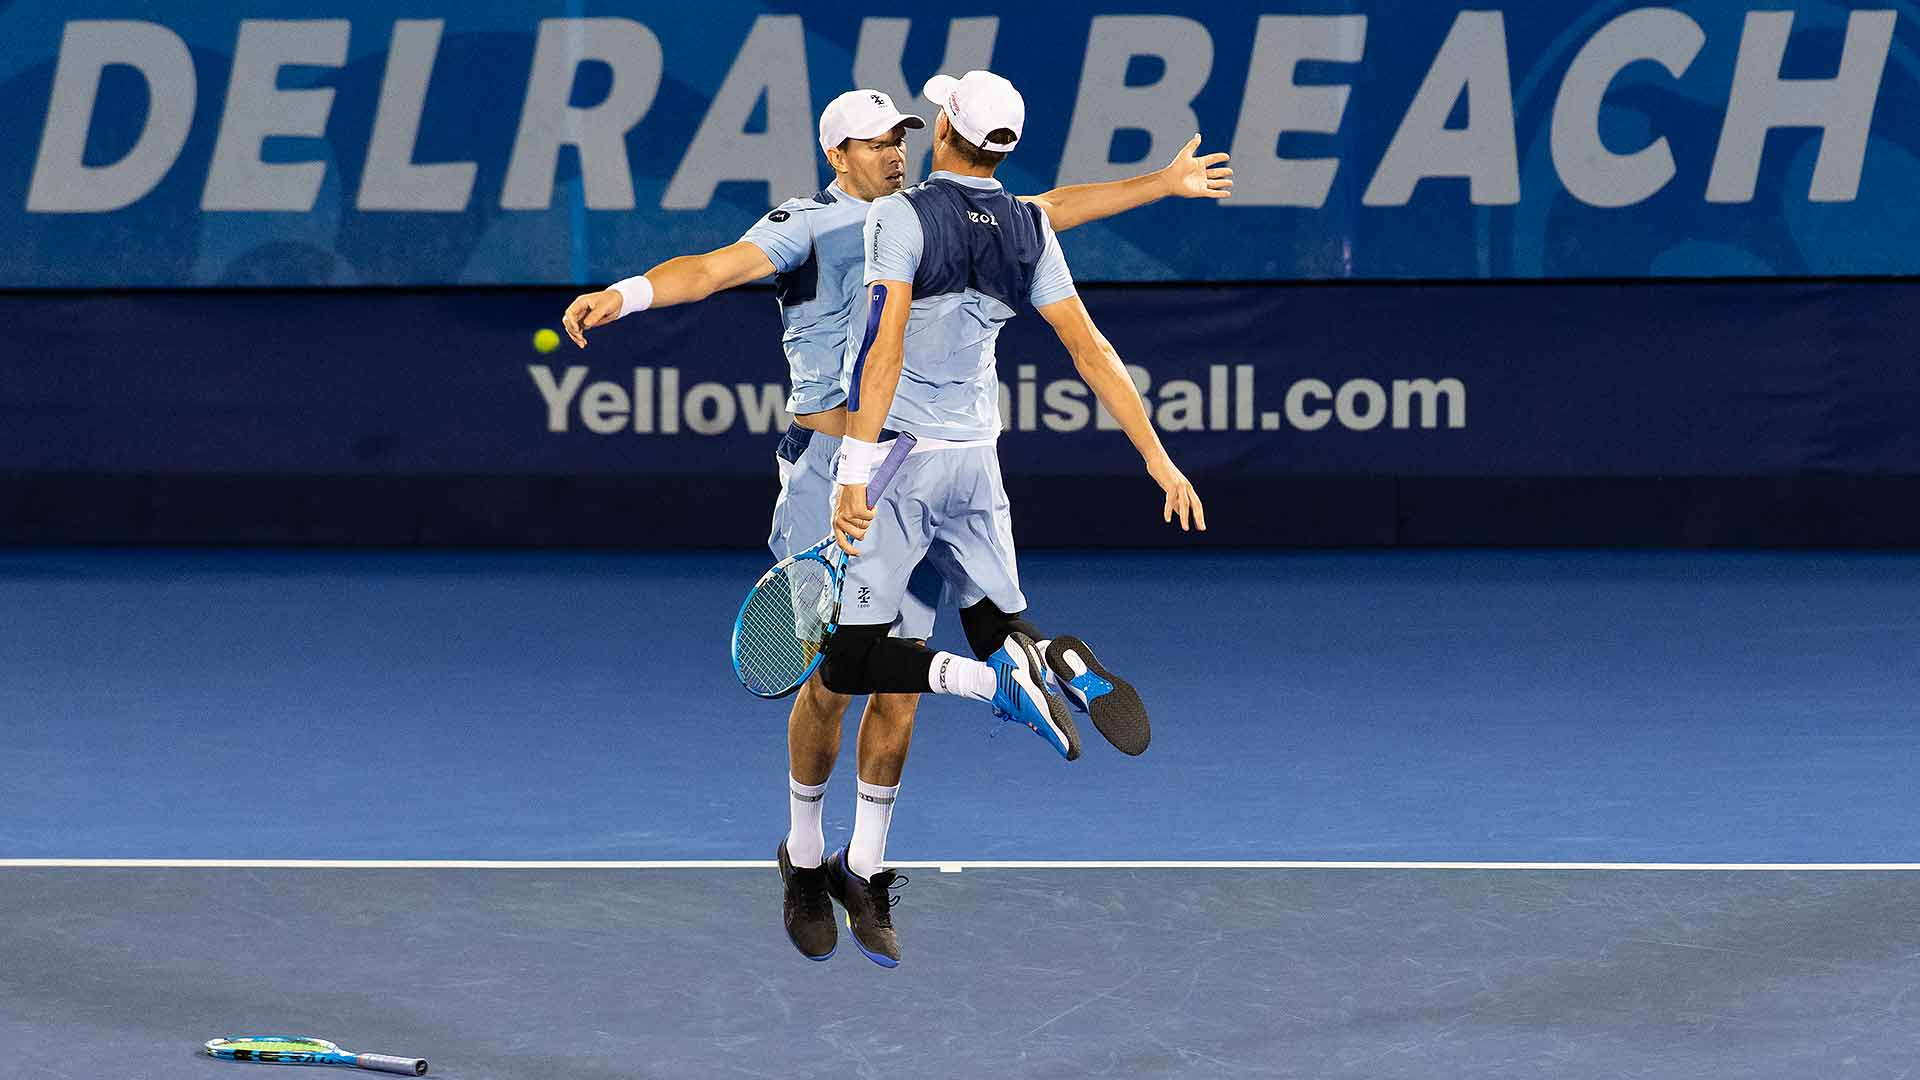 Bryan Brothers Win In Delray Beach   ATP Tour   Tennis